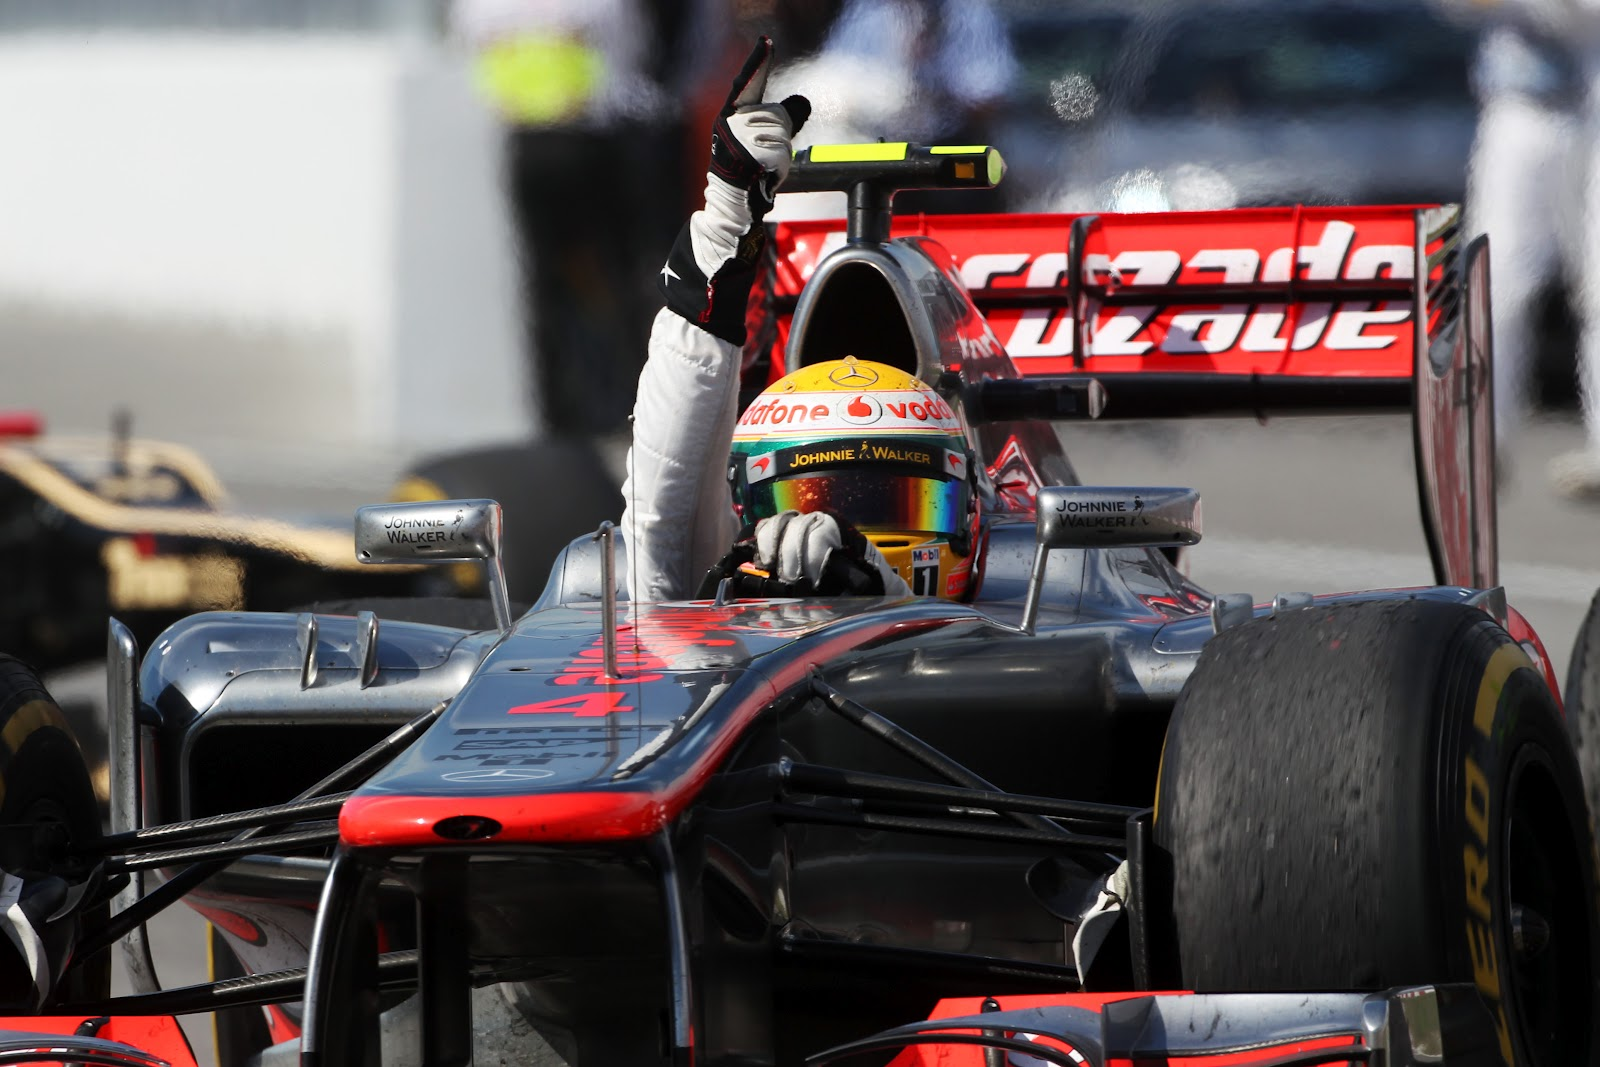 http://4.bp.blogspot.com/-u9ssskJWZF4/T9aPtfd2chI/AAAAAAAAbX0/ZwXY0eXfipc/s1600/15Race+winner+Lewis+Hamilton+(GBR)+McLaren+MP4-27+celebrates+at+the+end+of+the+race..jpg